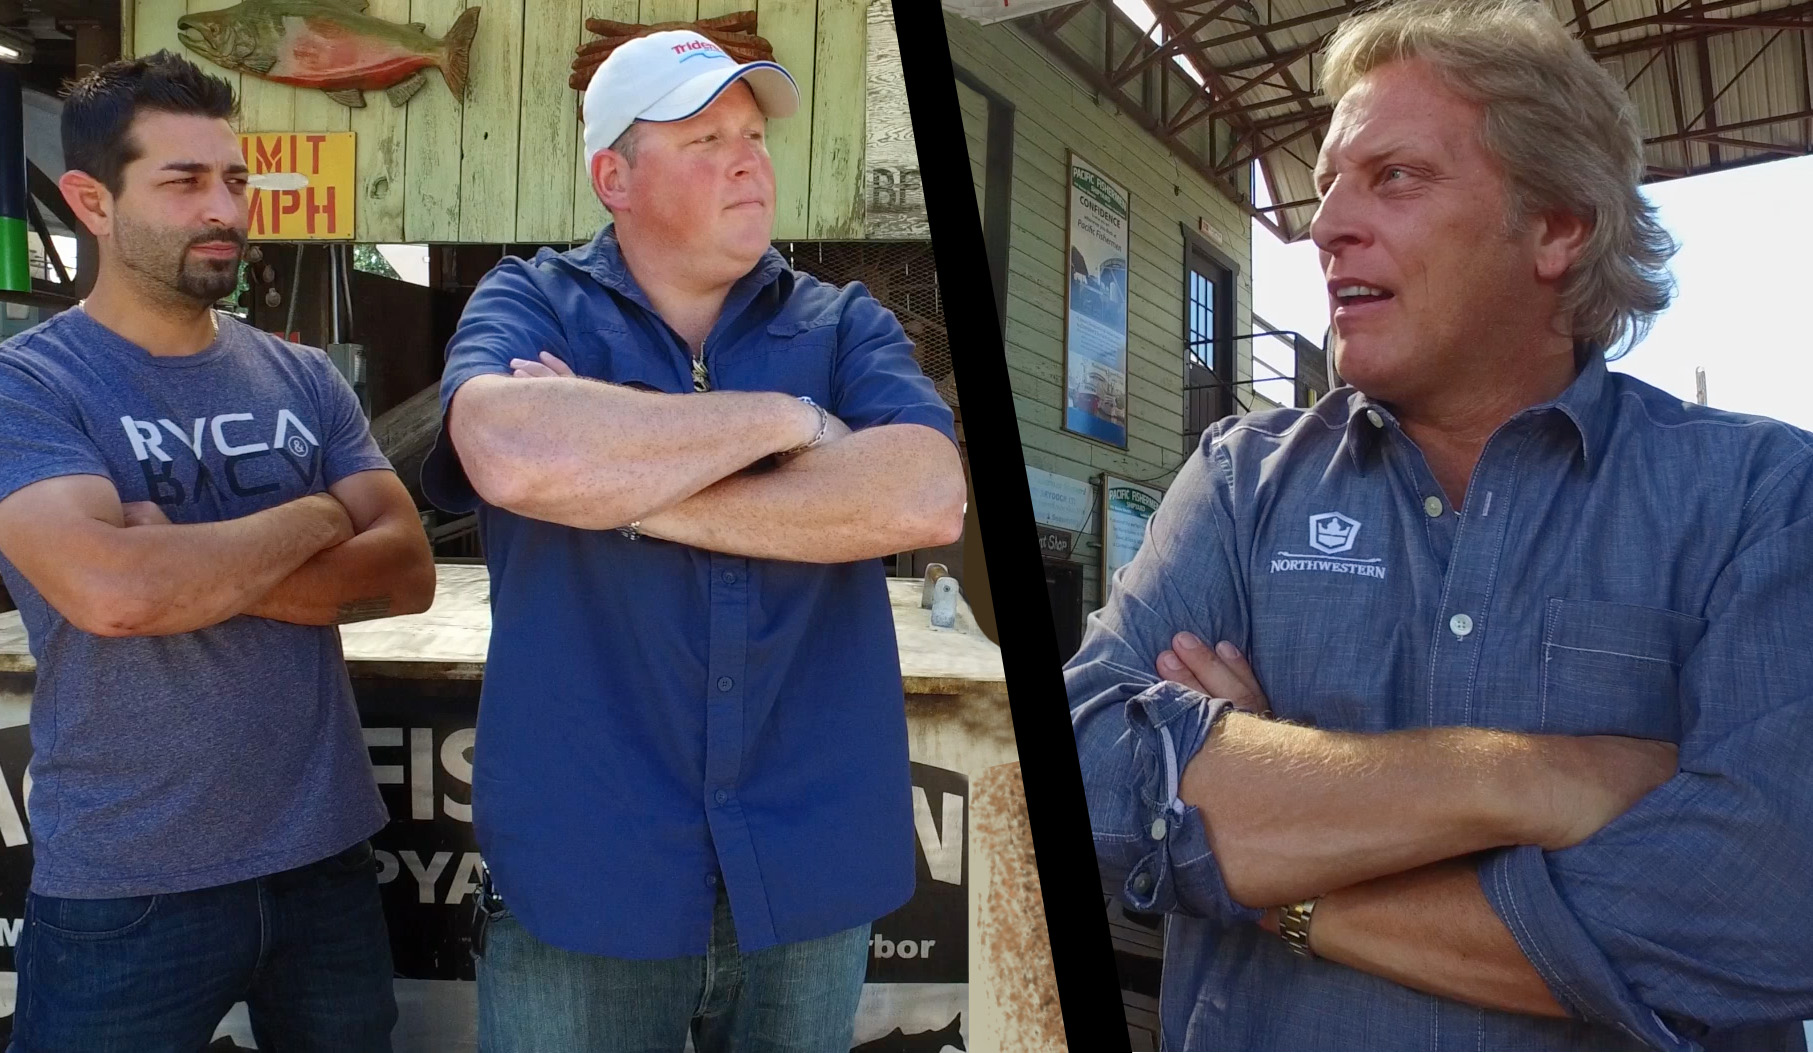 A Spirited Whiskey Challenge from the Captains of the Deadliest Catch